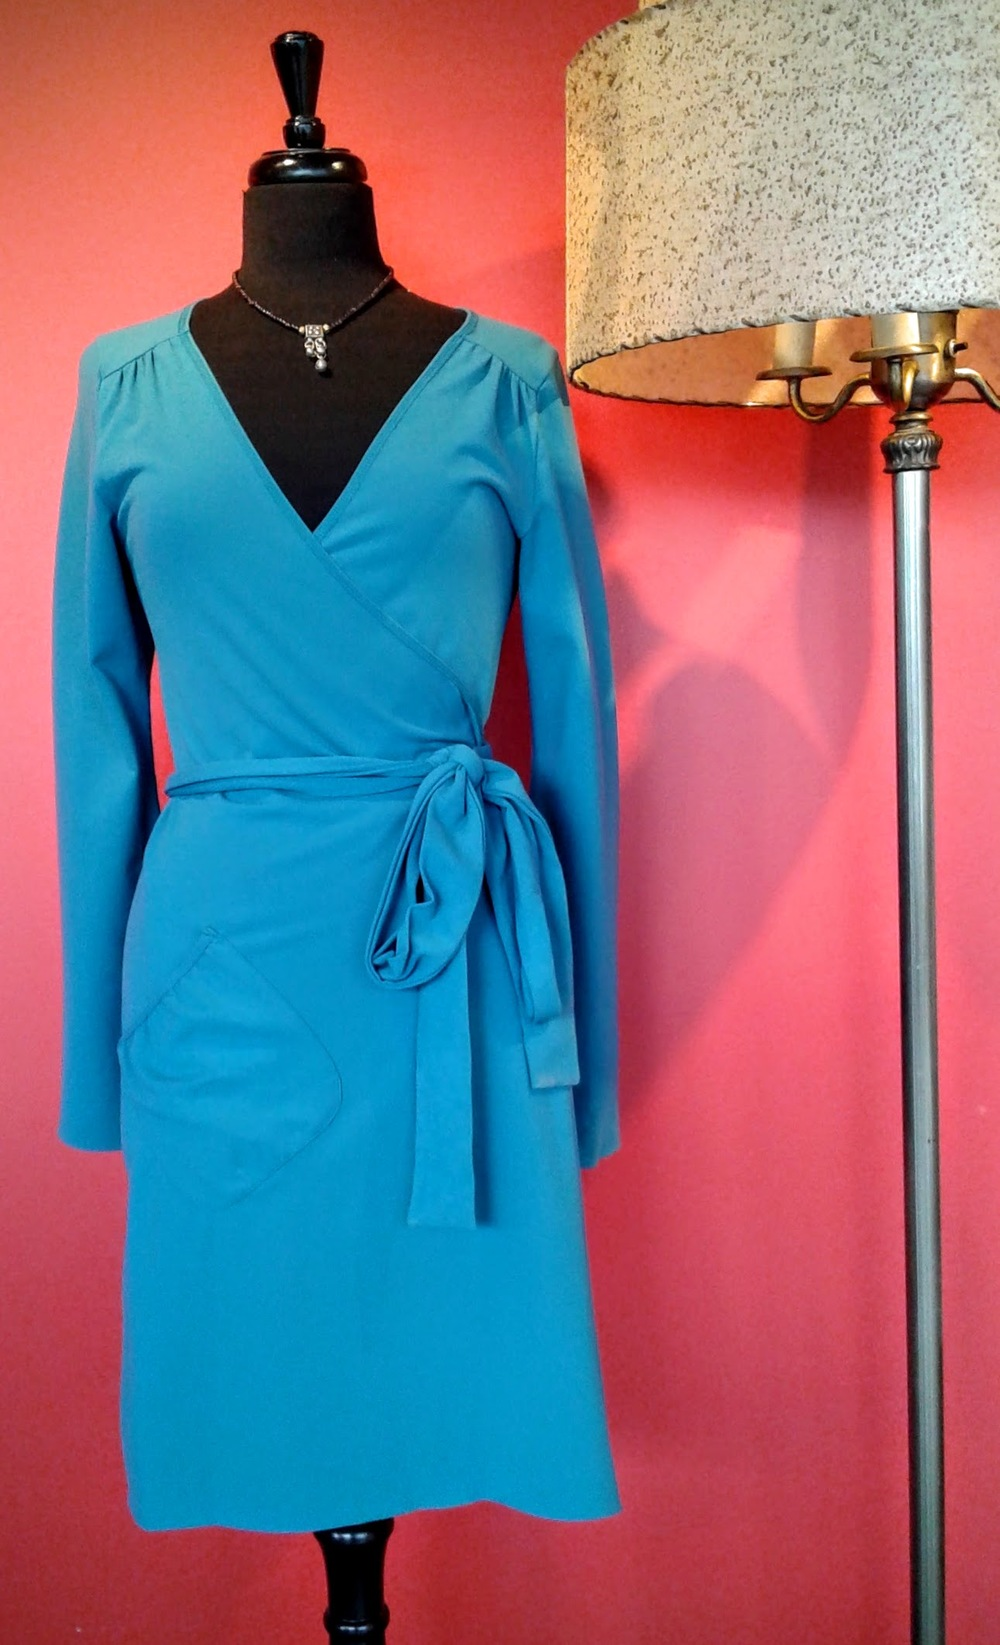 Lululemon dress (NWT), Size 8, $40; Bell necklace, $20